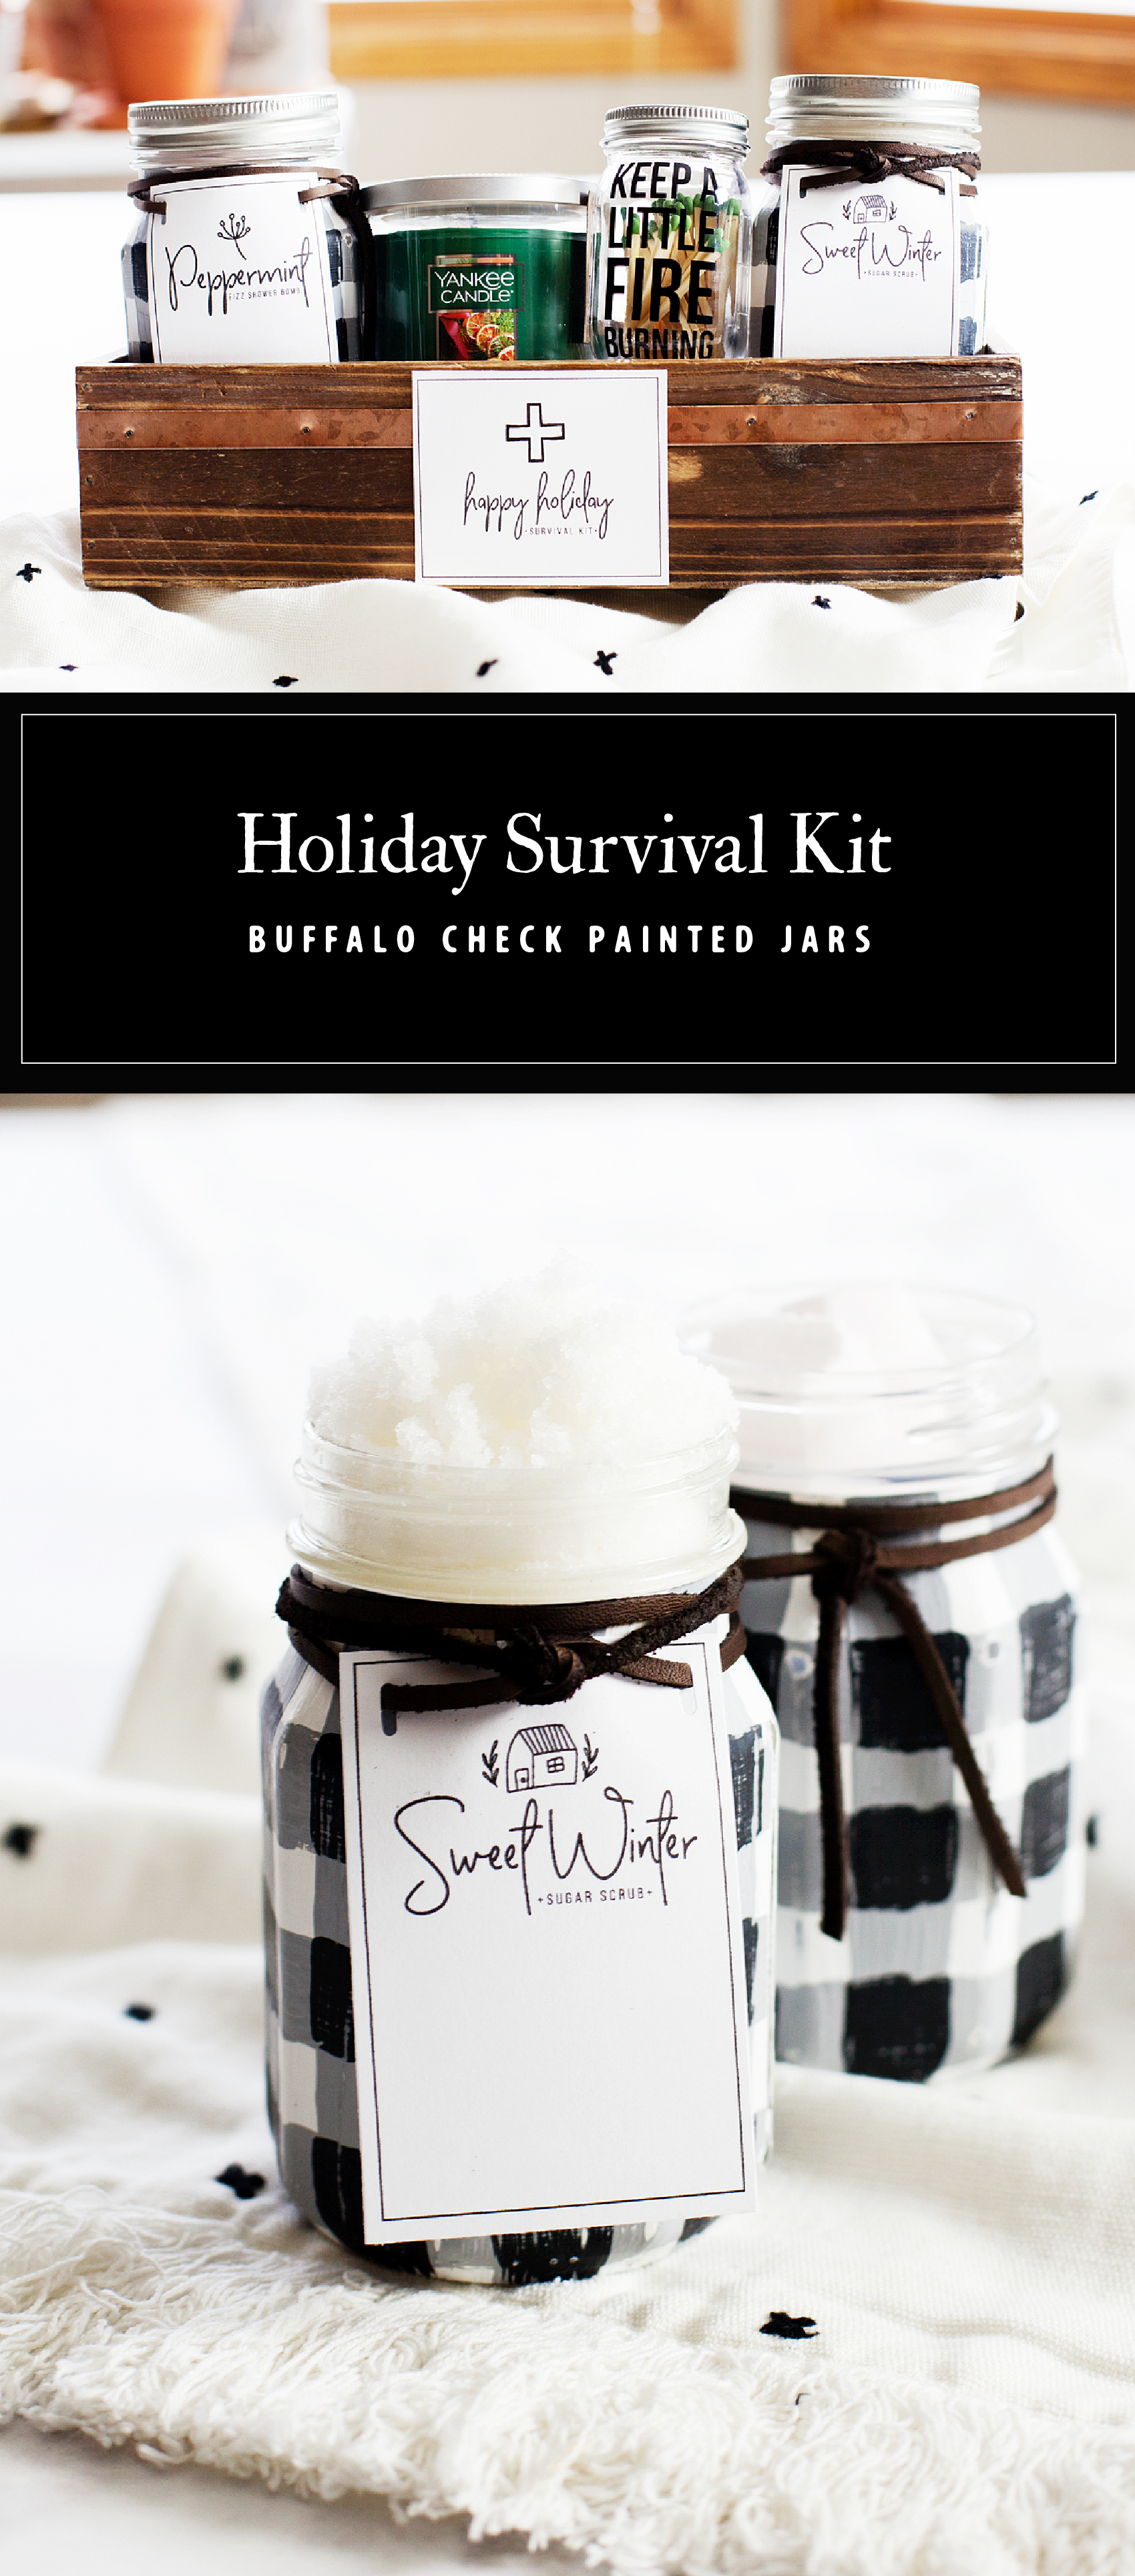 Create this fun and stylish spa inspired Holiday Survival Kit full of spa goodies in Buffalo Check Ball Jars, a Yankee Candle and the cutest little Ball match jar + free printable tags for each item in the kit created by WhipperBerry